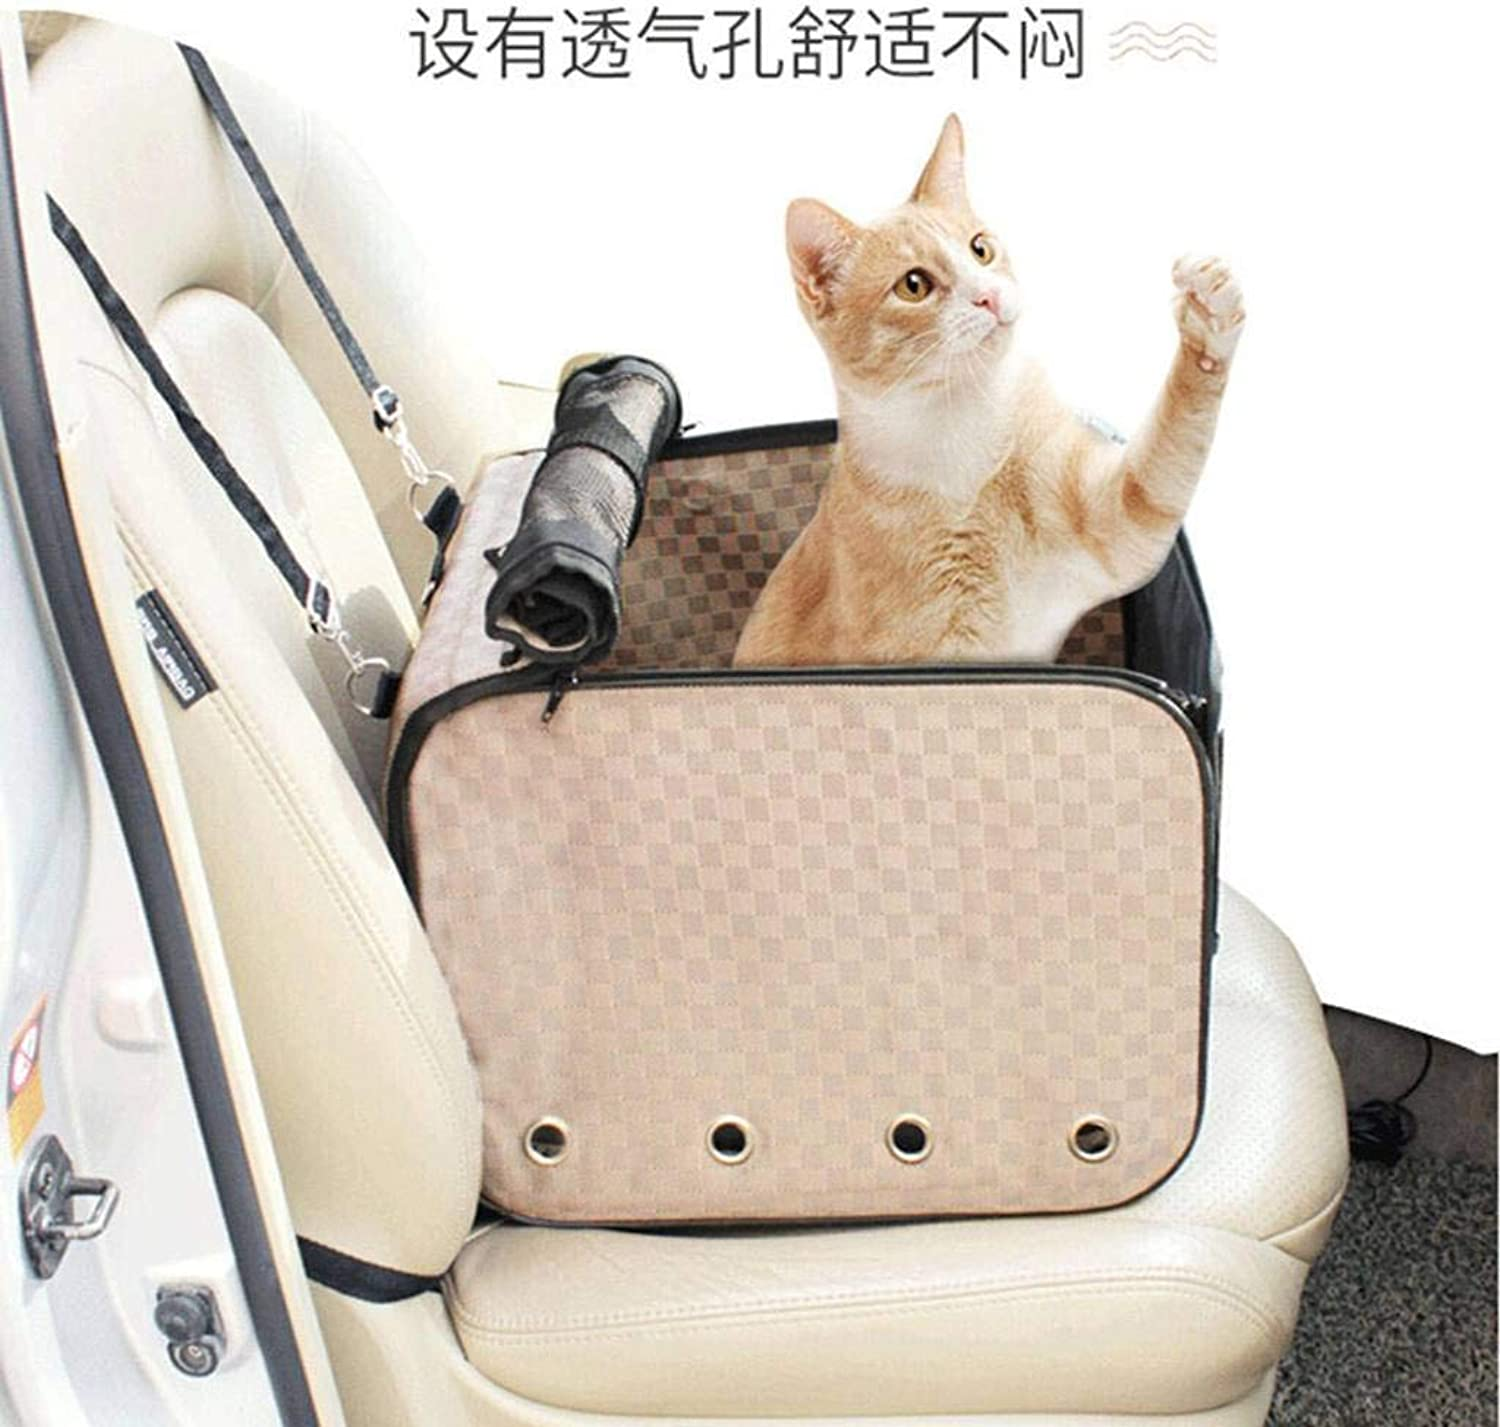 HGG Pet Car Booster Seat Dog Bed,with Dog Seat Belt for Car, Waterproof Travel Dog Carrier Bag for Small Dogs Cats Puppy Beige